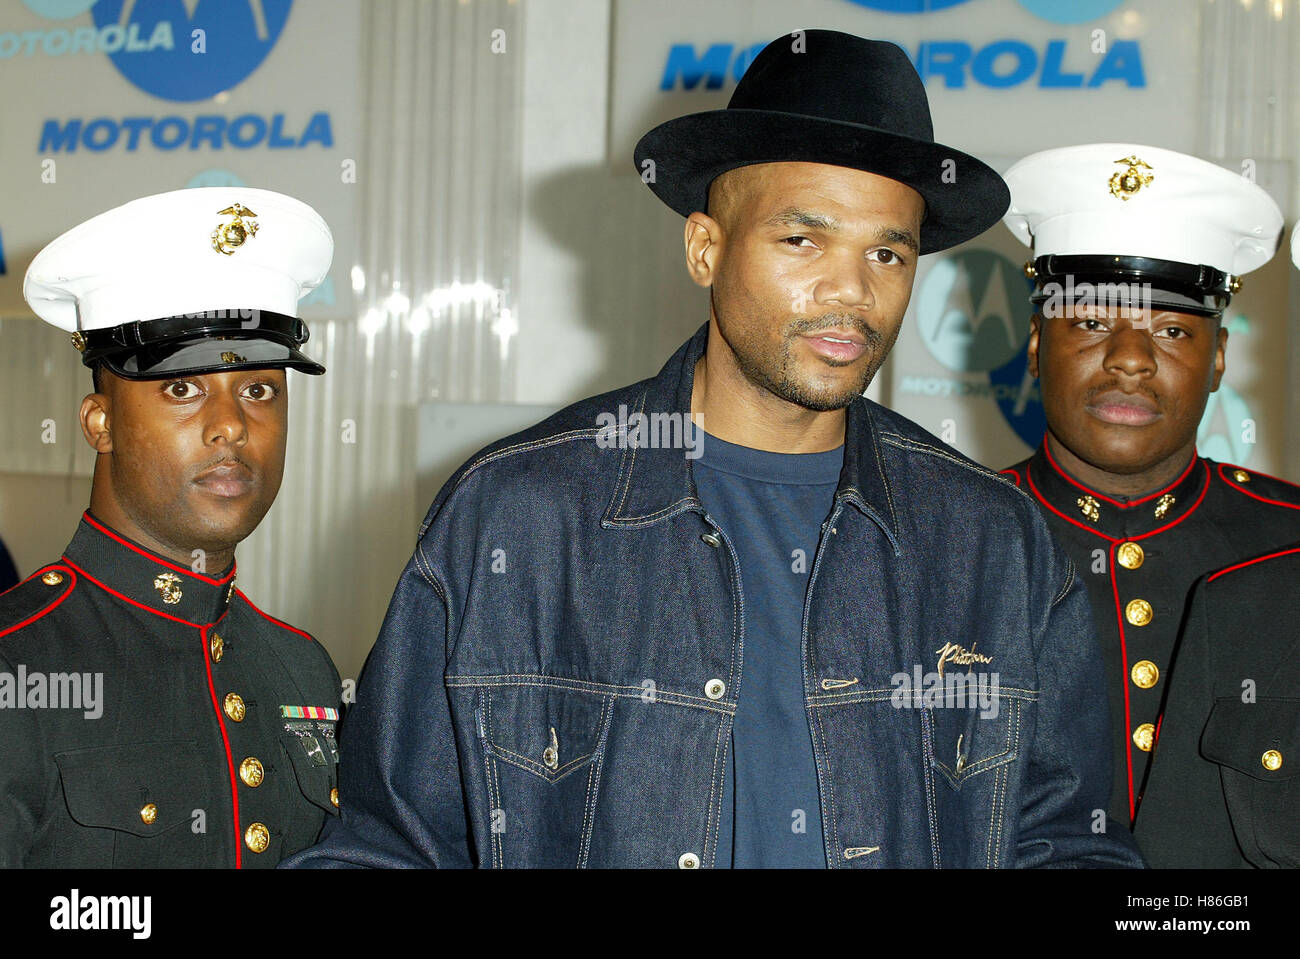 RUN DMC & US MARINES MOTOROLA HOILDAY PARTY 2002 HOLLYWOOD LOS ANGELES USA 05 December 2002 - Stock Image